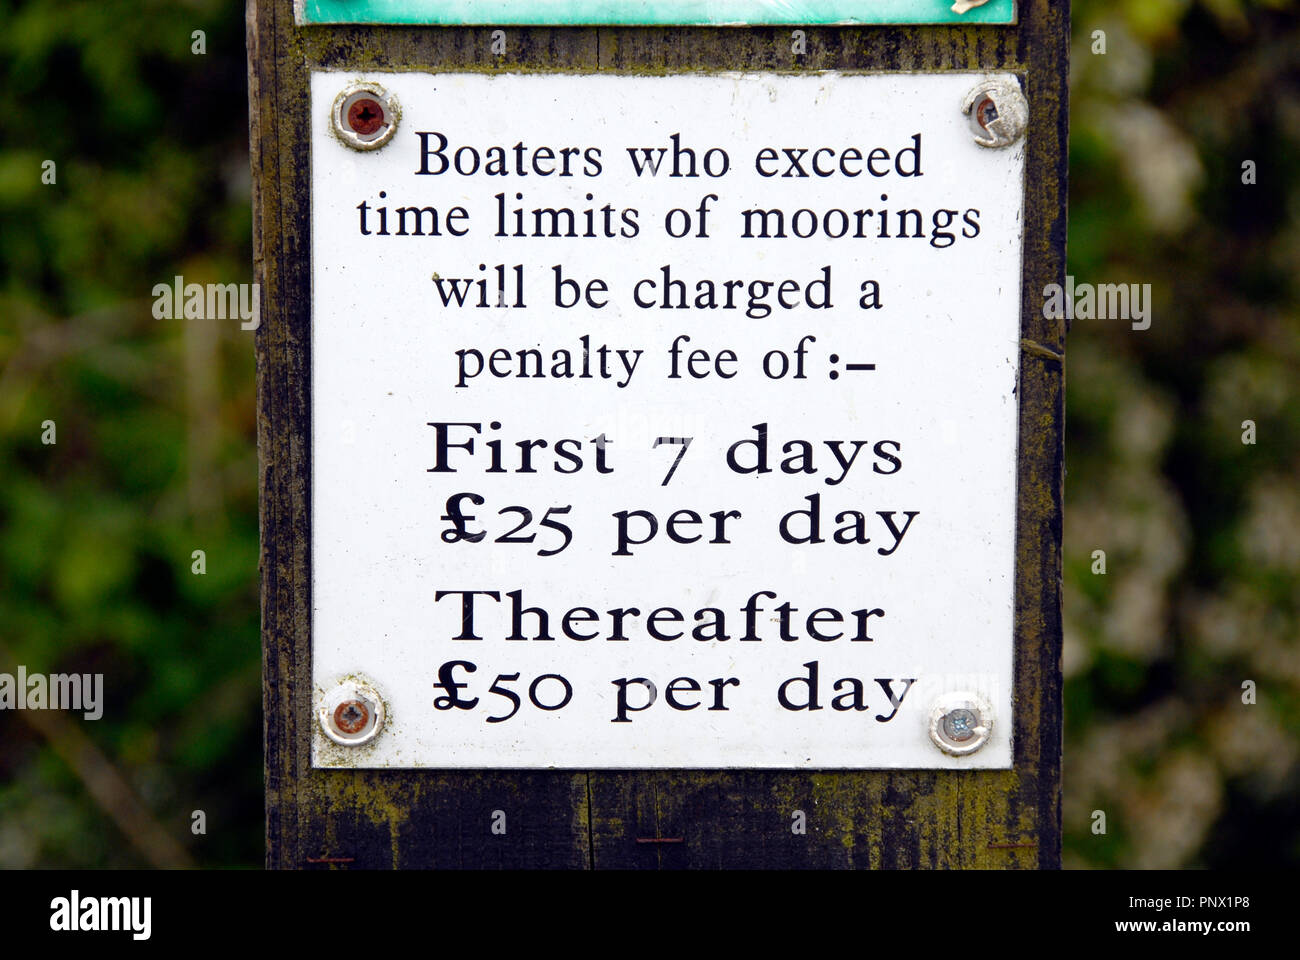 Close up of sign showing penalties for overstaying time limits for mooring on Kennet & Avon canal, Wiltshire, England - Stock Image